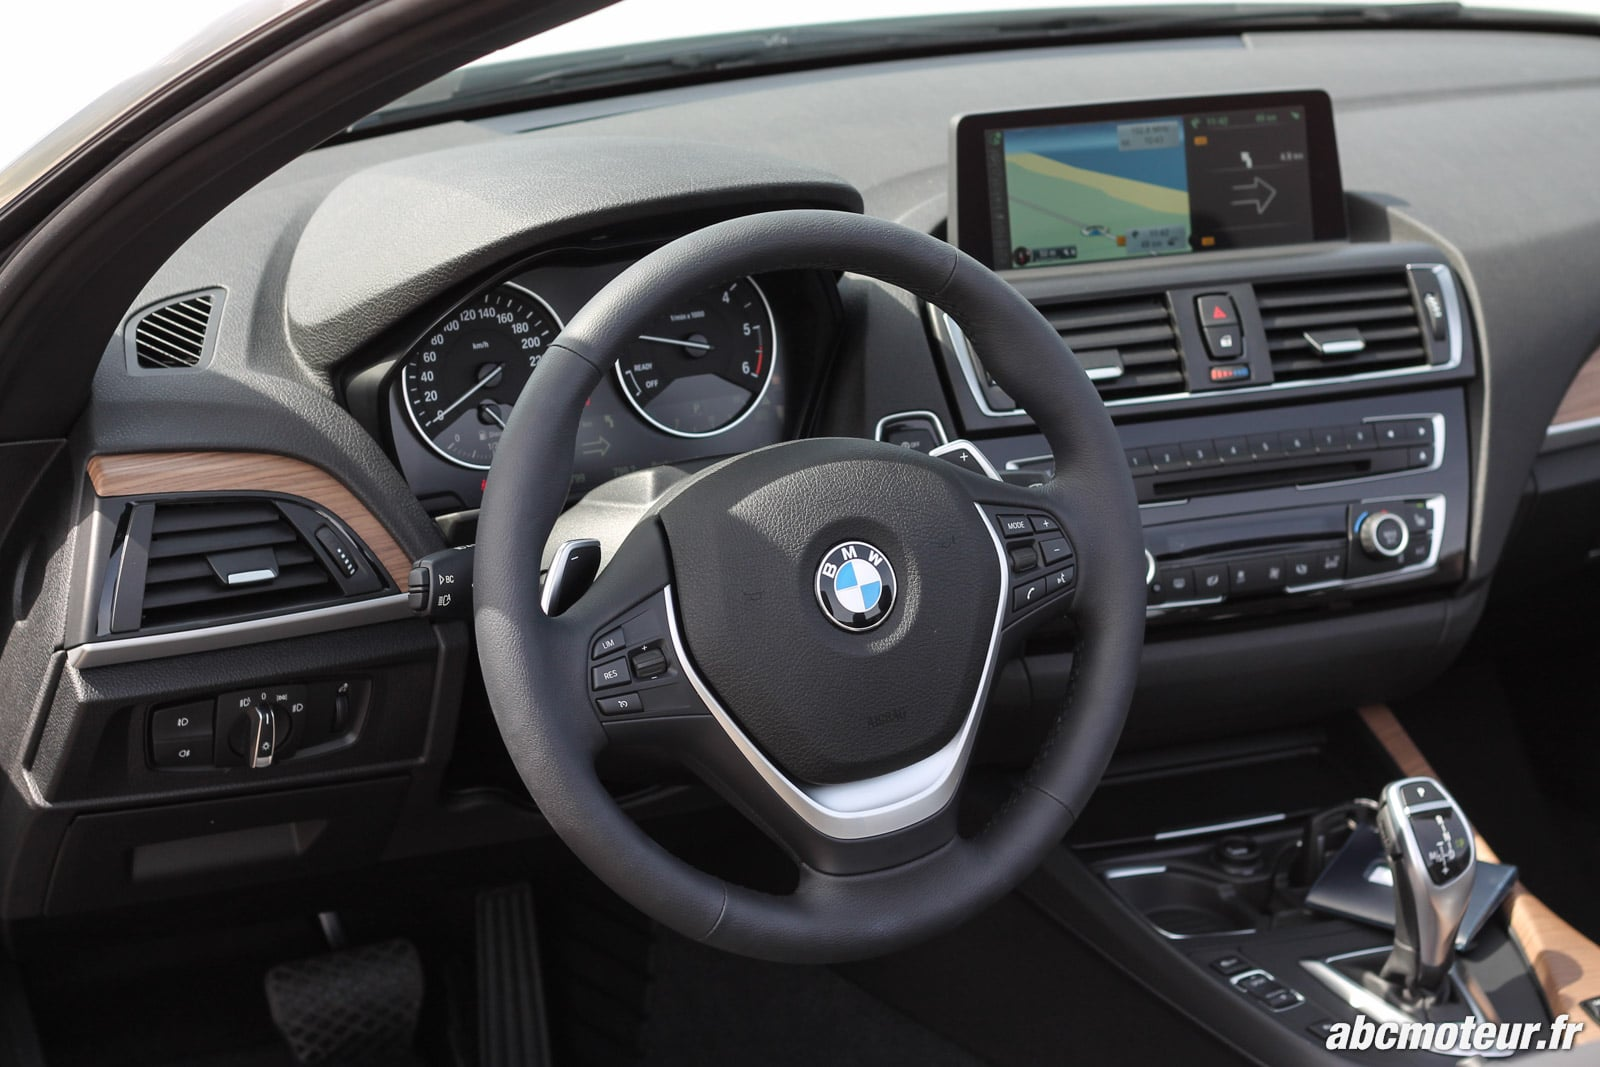 essai bmw s rie 2 cabriolet 220d m235i deux registres distincts. Black Bedroom Furniture Sets. Home Design Ideas